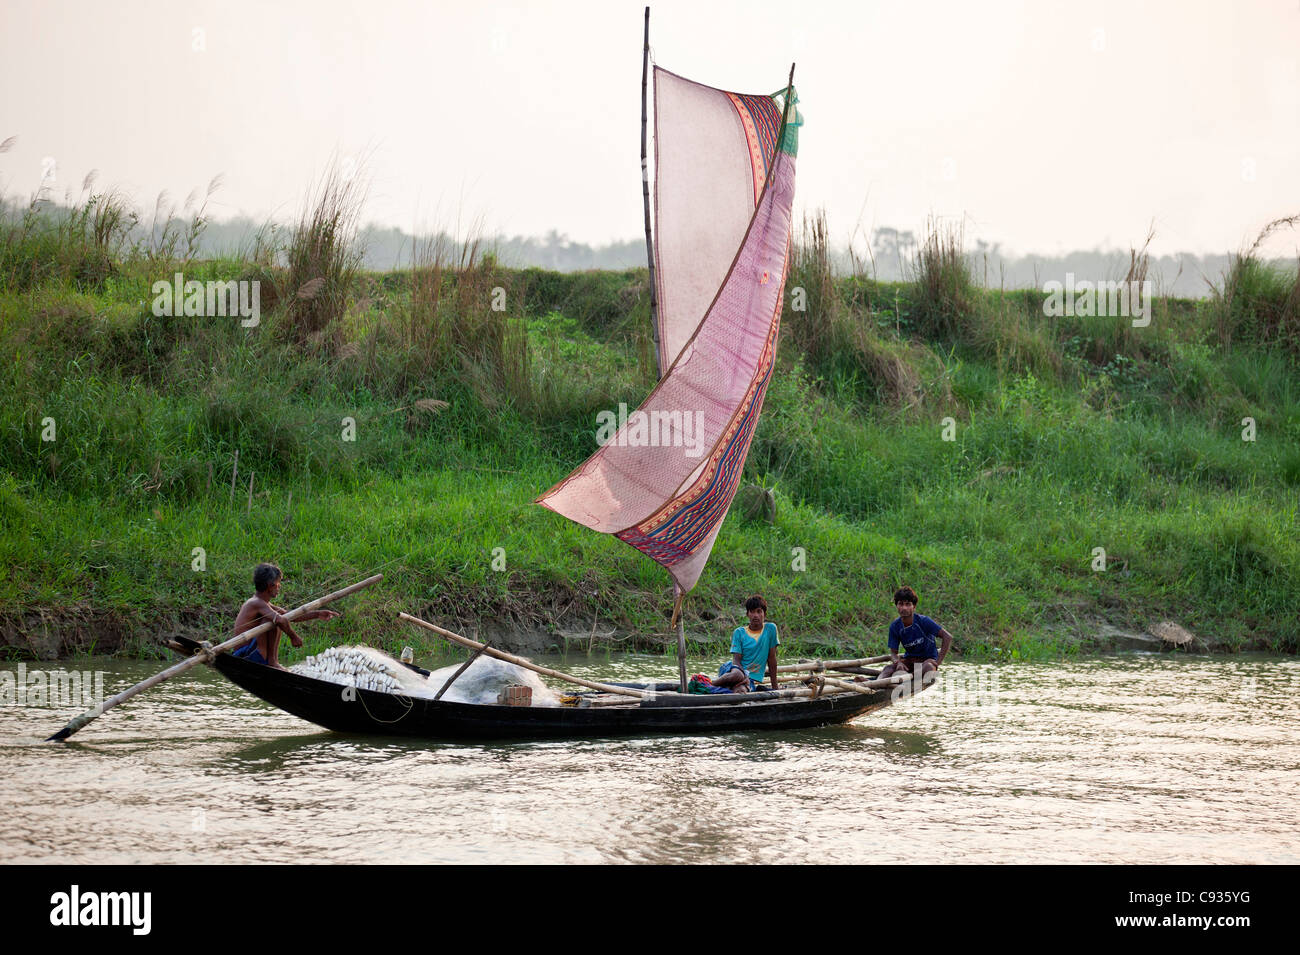 A fishing boat with an improvised sail on the Hooghly River near Kalna. - Stock Image